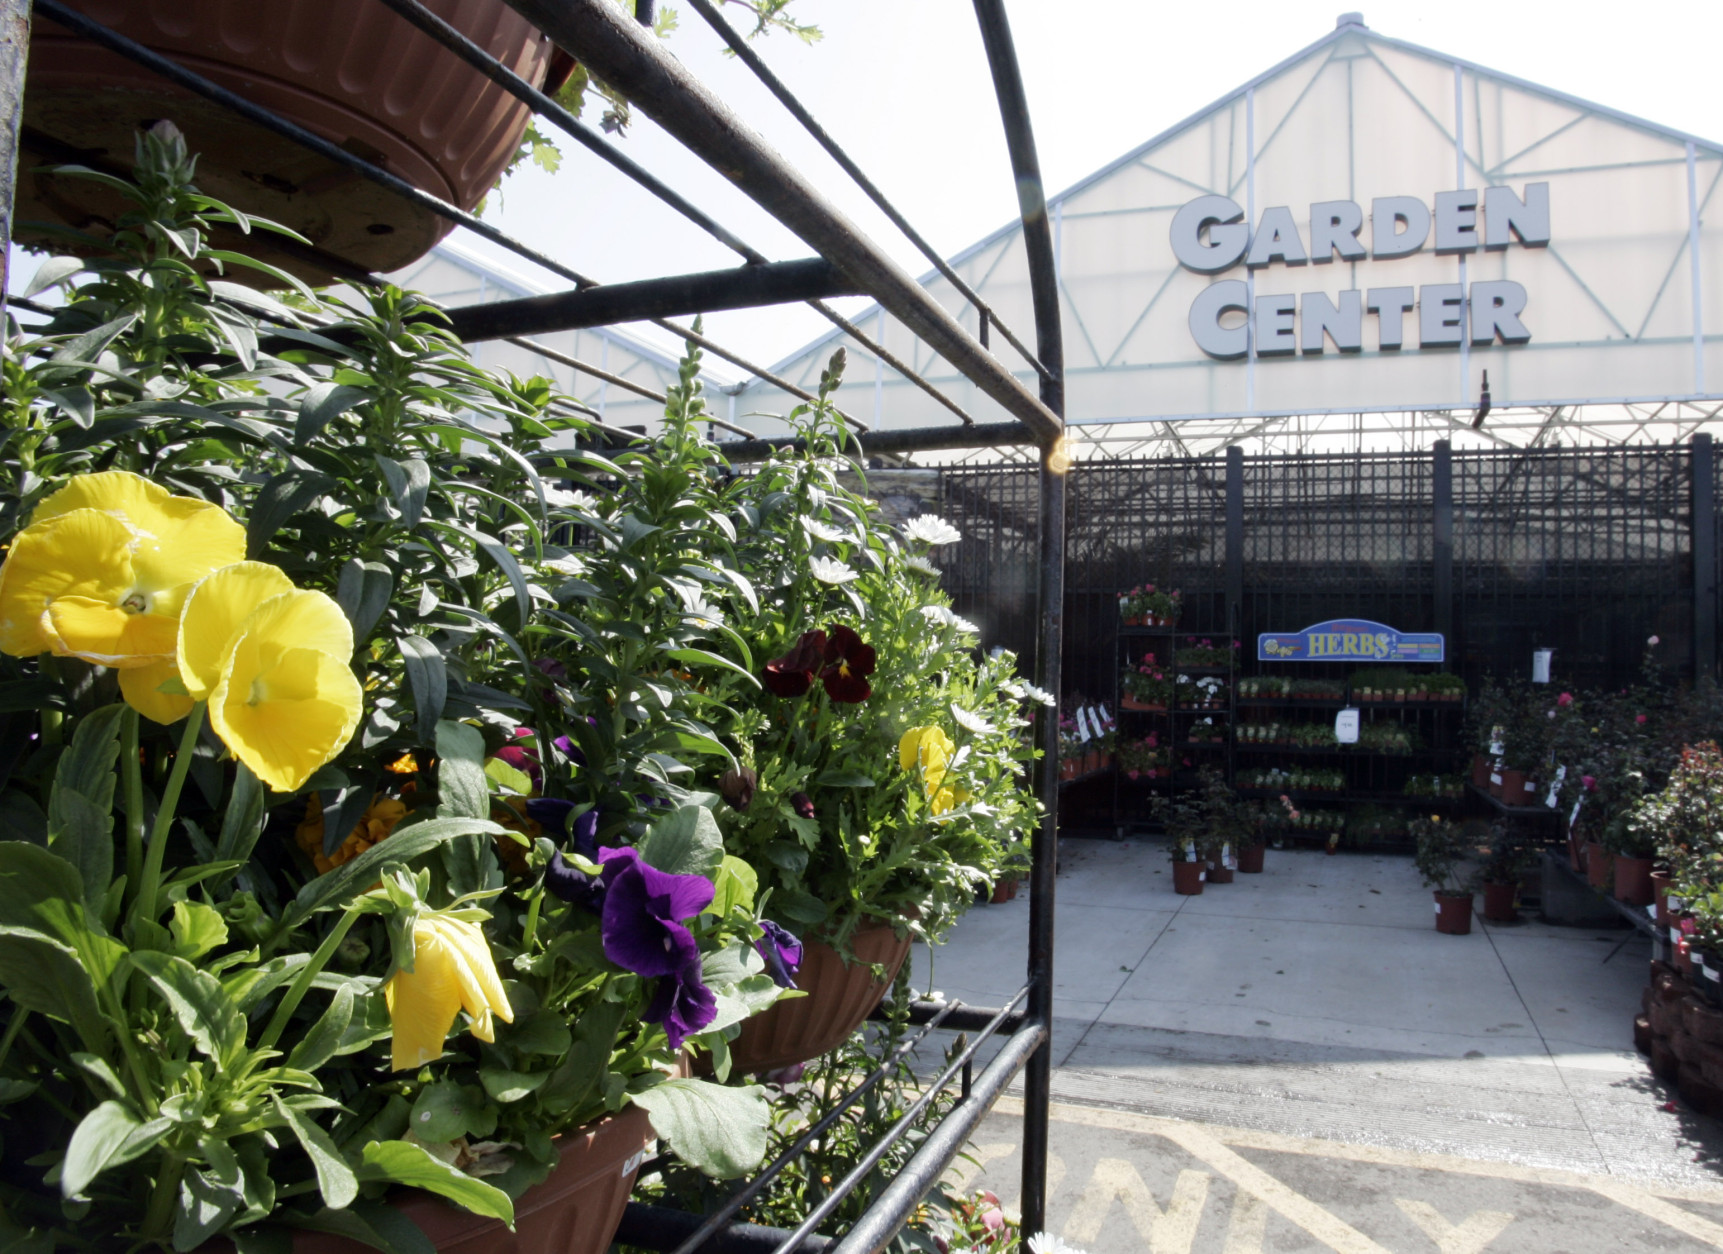 Survey Higher than average prices found at top local nurseries WTOP